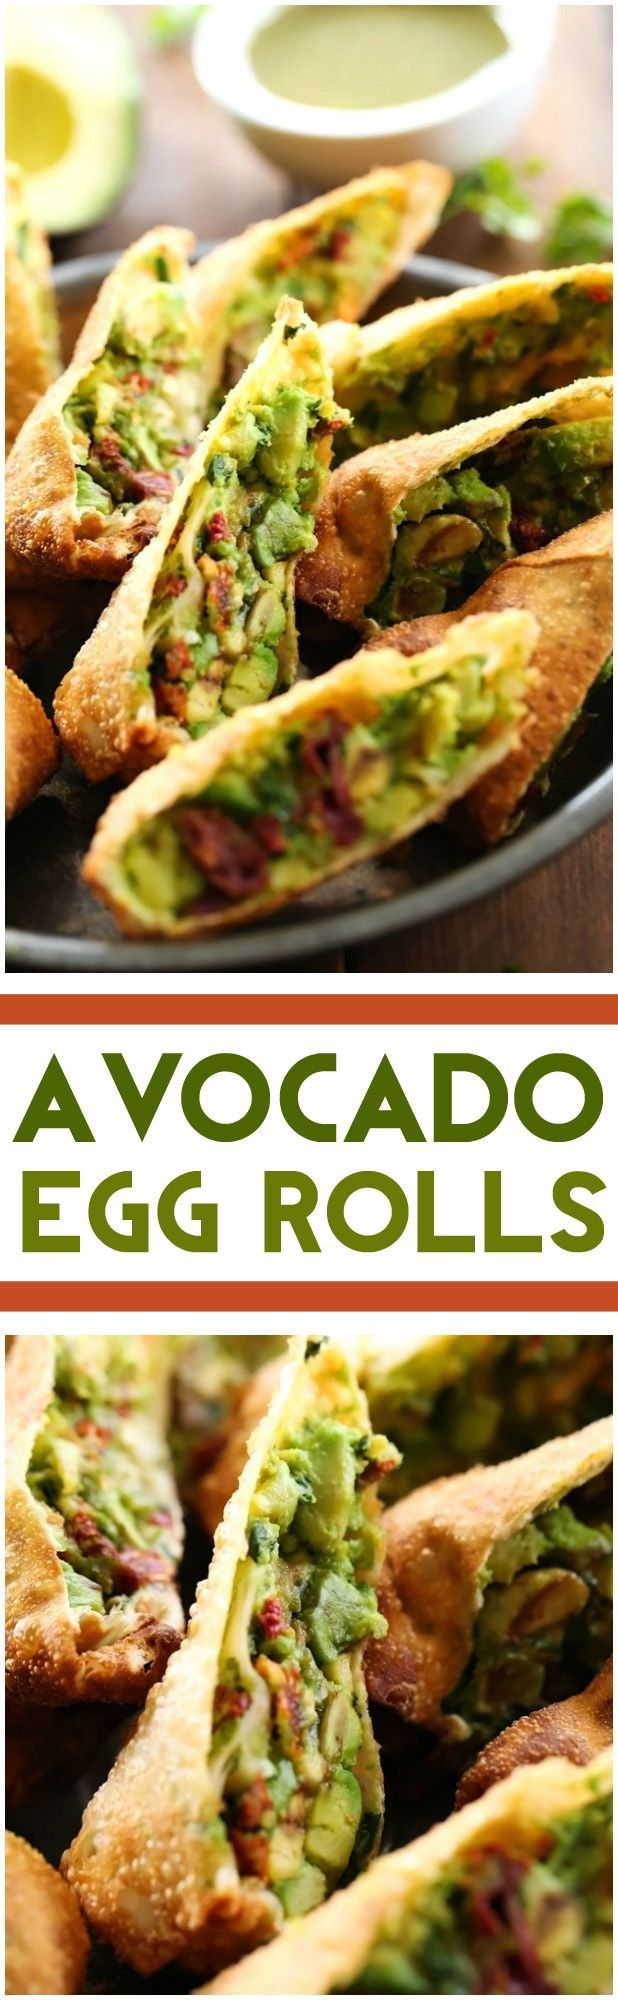 Avocado Egg Rolls    These are absolutely DIVINE  So much delicious flavor packed into one incredible appetizer  This will be one recipe you will want to make over and over again